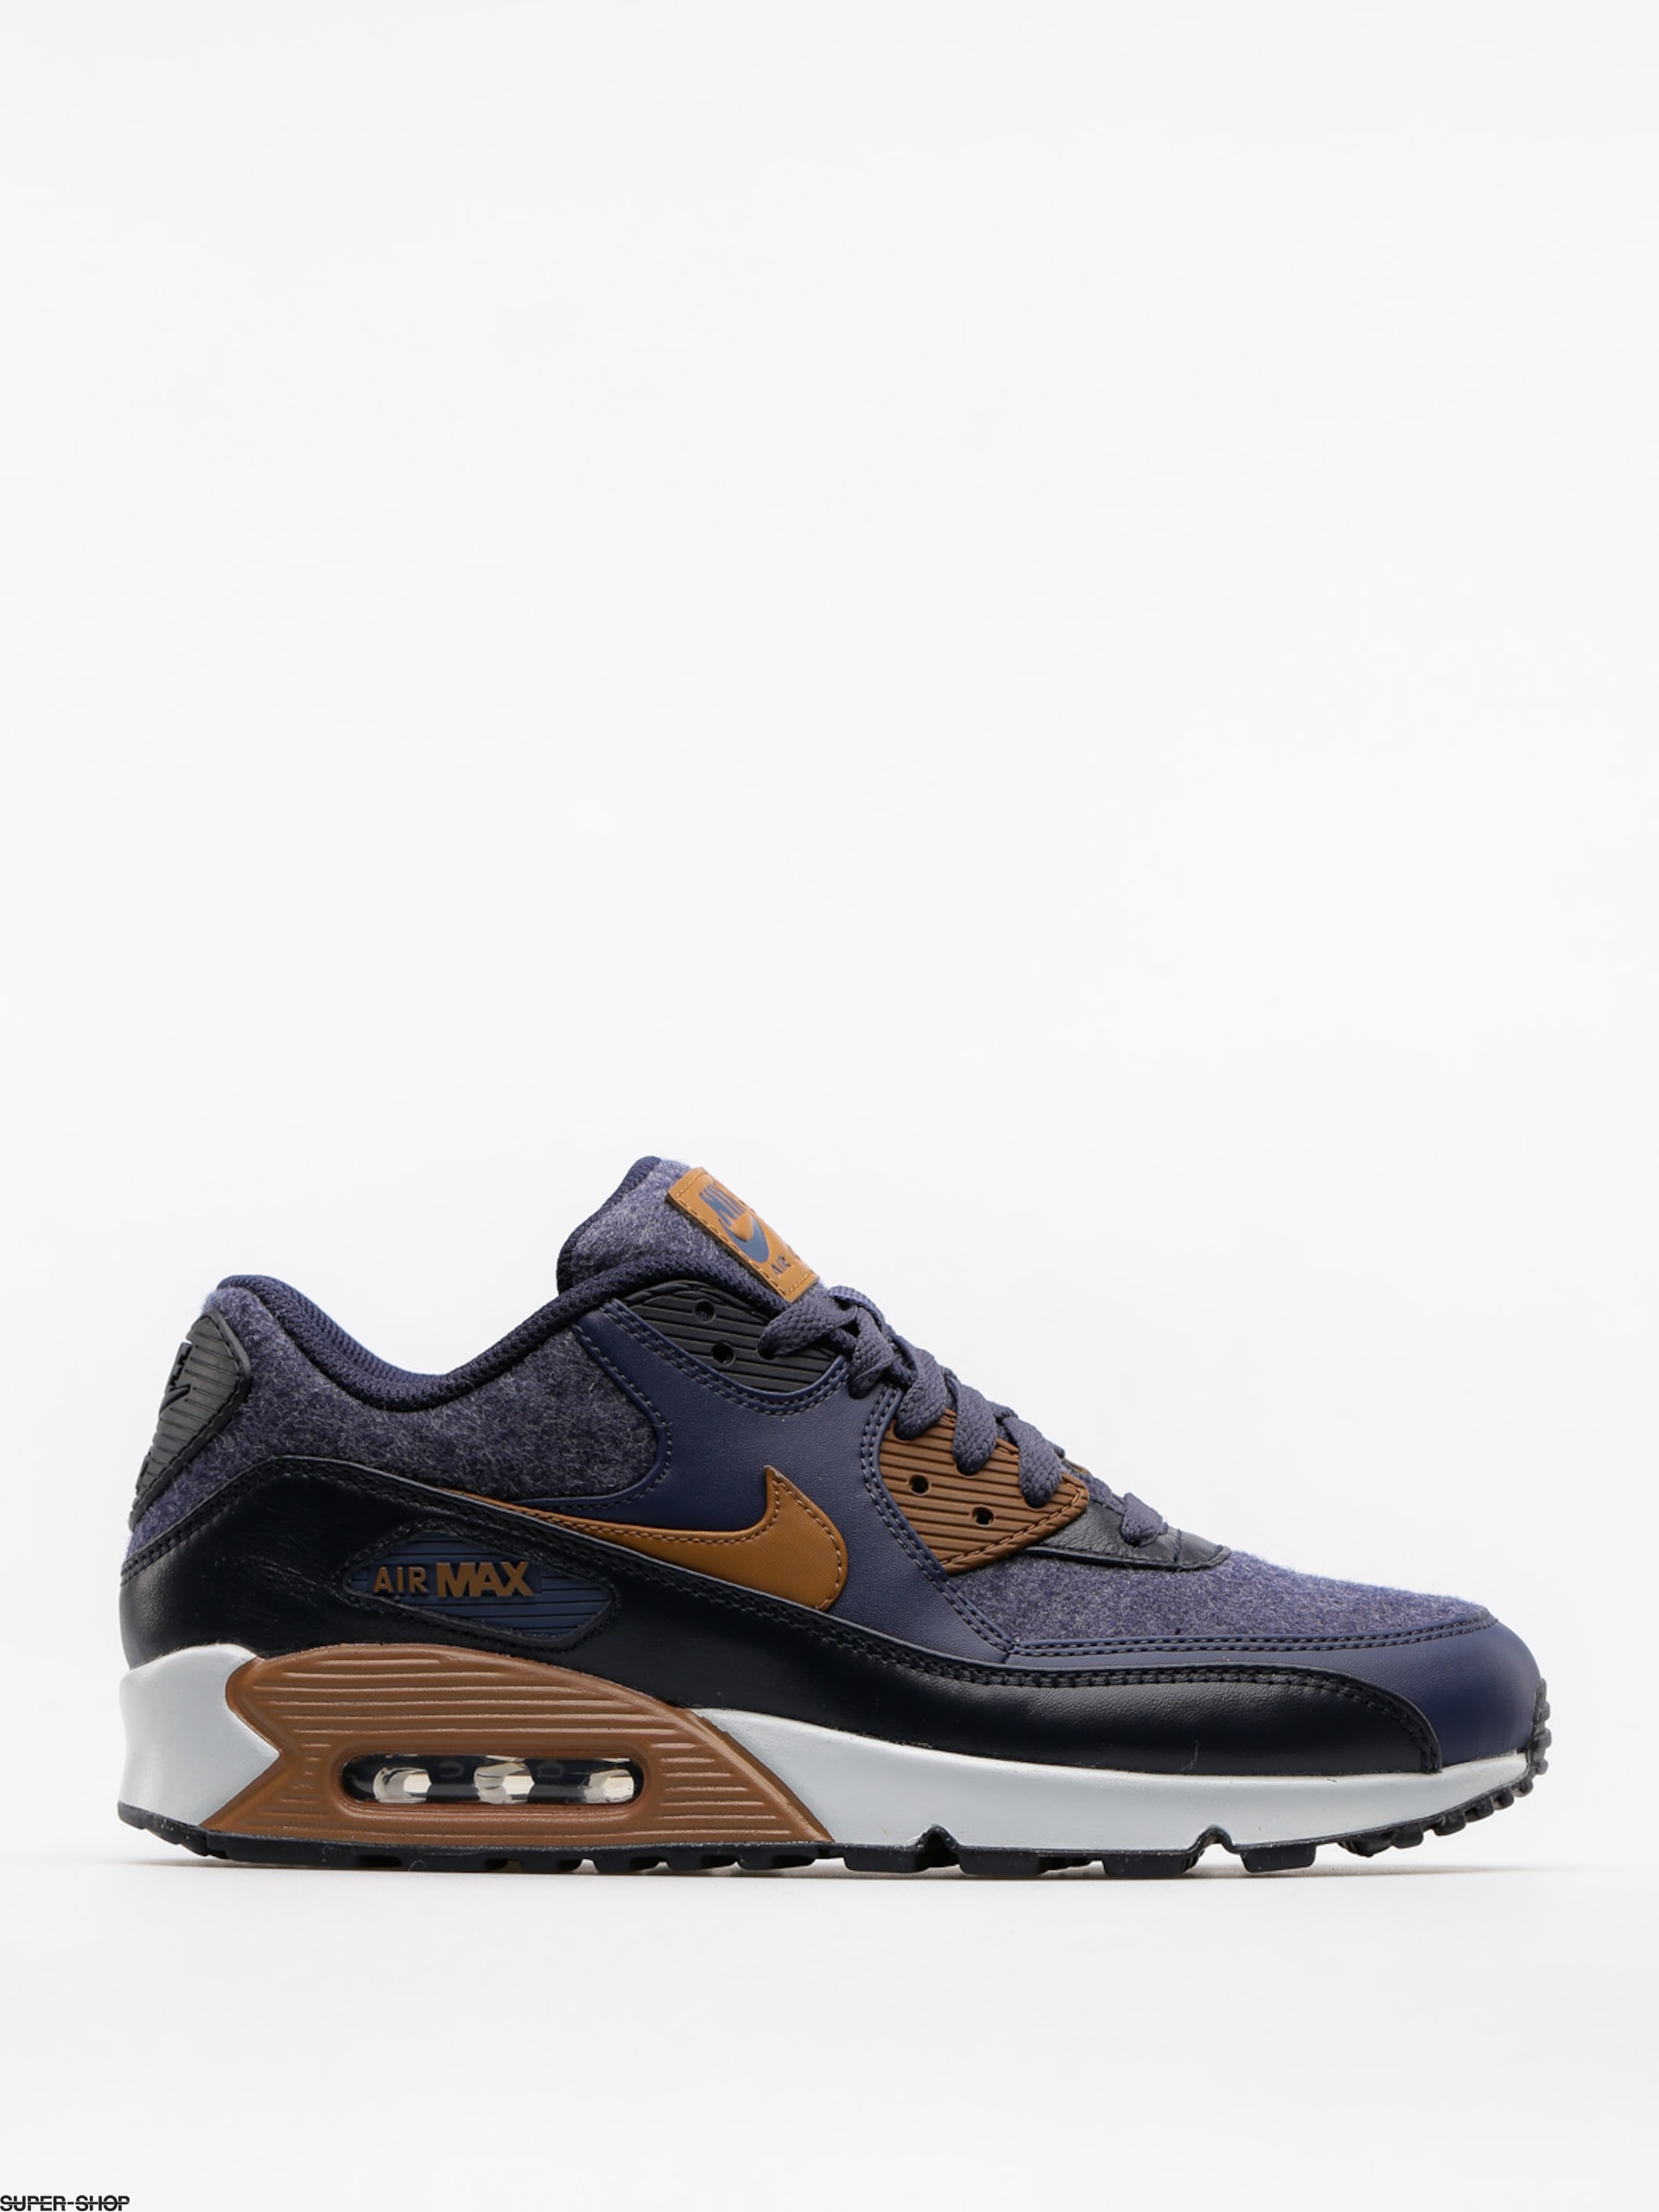 Nike Shoes Air Max 90 Premium (thunder blue/ale brown dark obsidian)